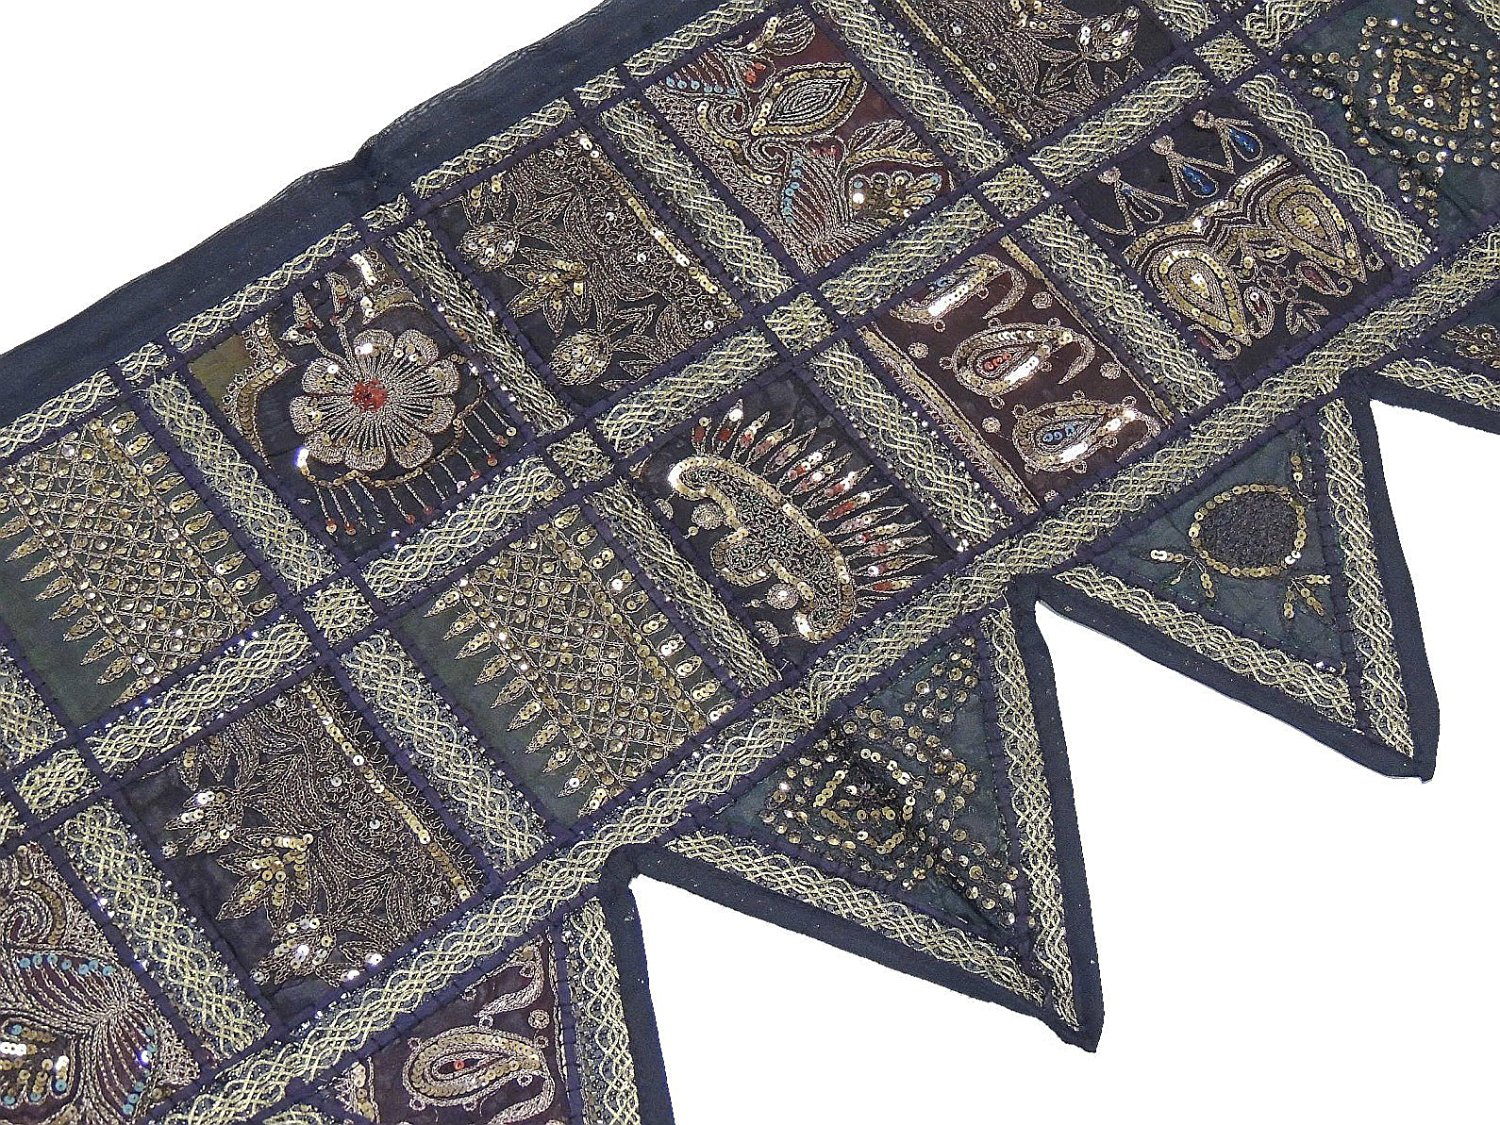 Black with Gold Embroidered, Beaded and Sequin Work Window Valance Covering - Decorative Patchwork Pattern ~ 60 Inch x 20 Inch